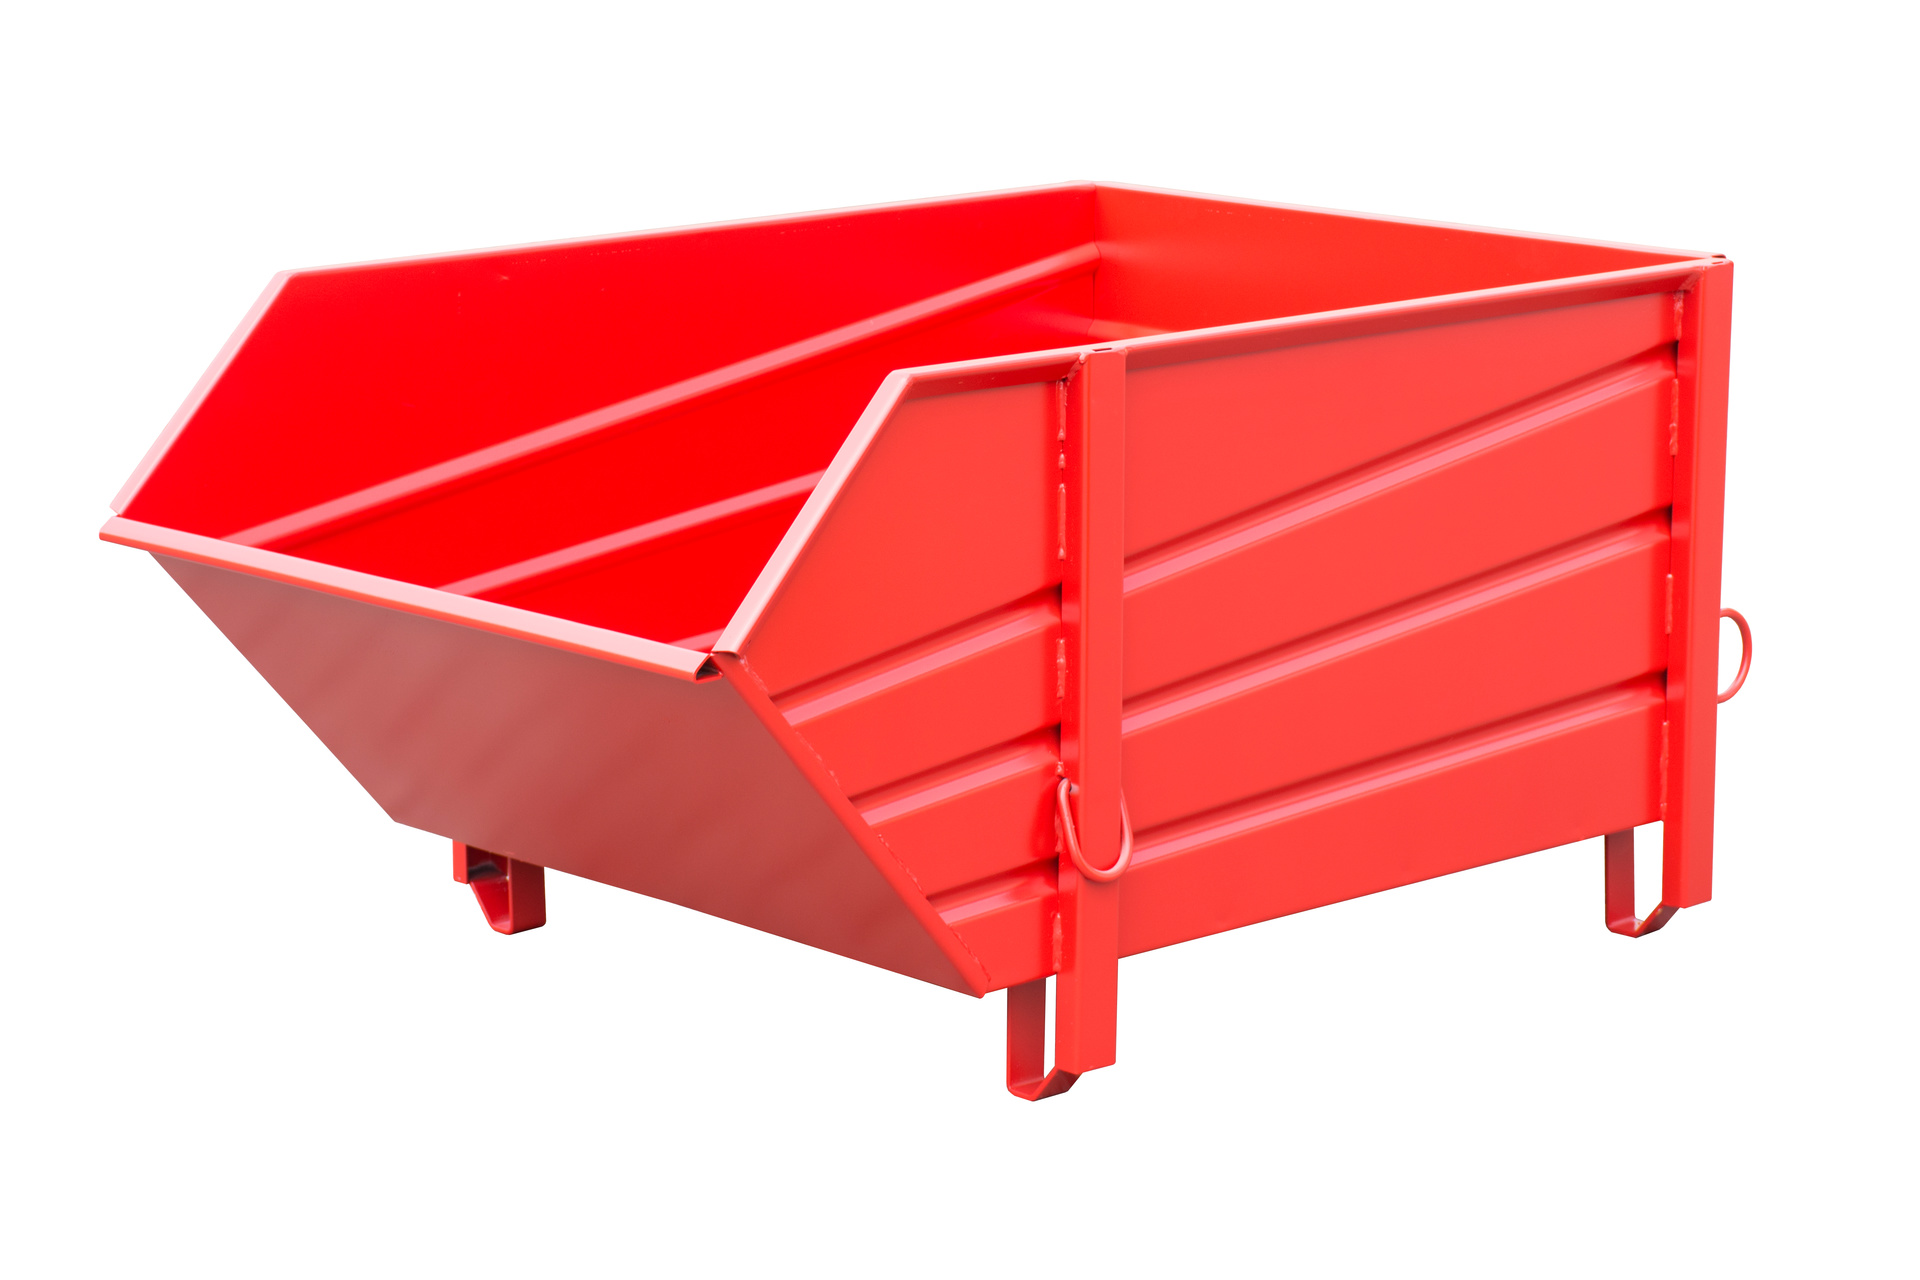 Bauer Südlohn® BBP Building material container, made of profiled sheet steel